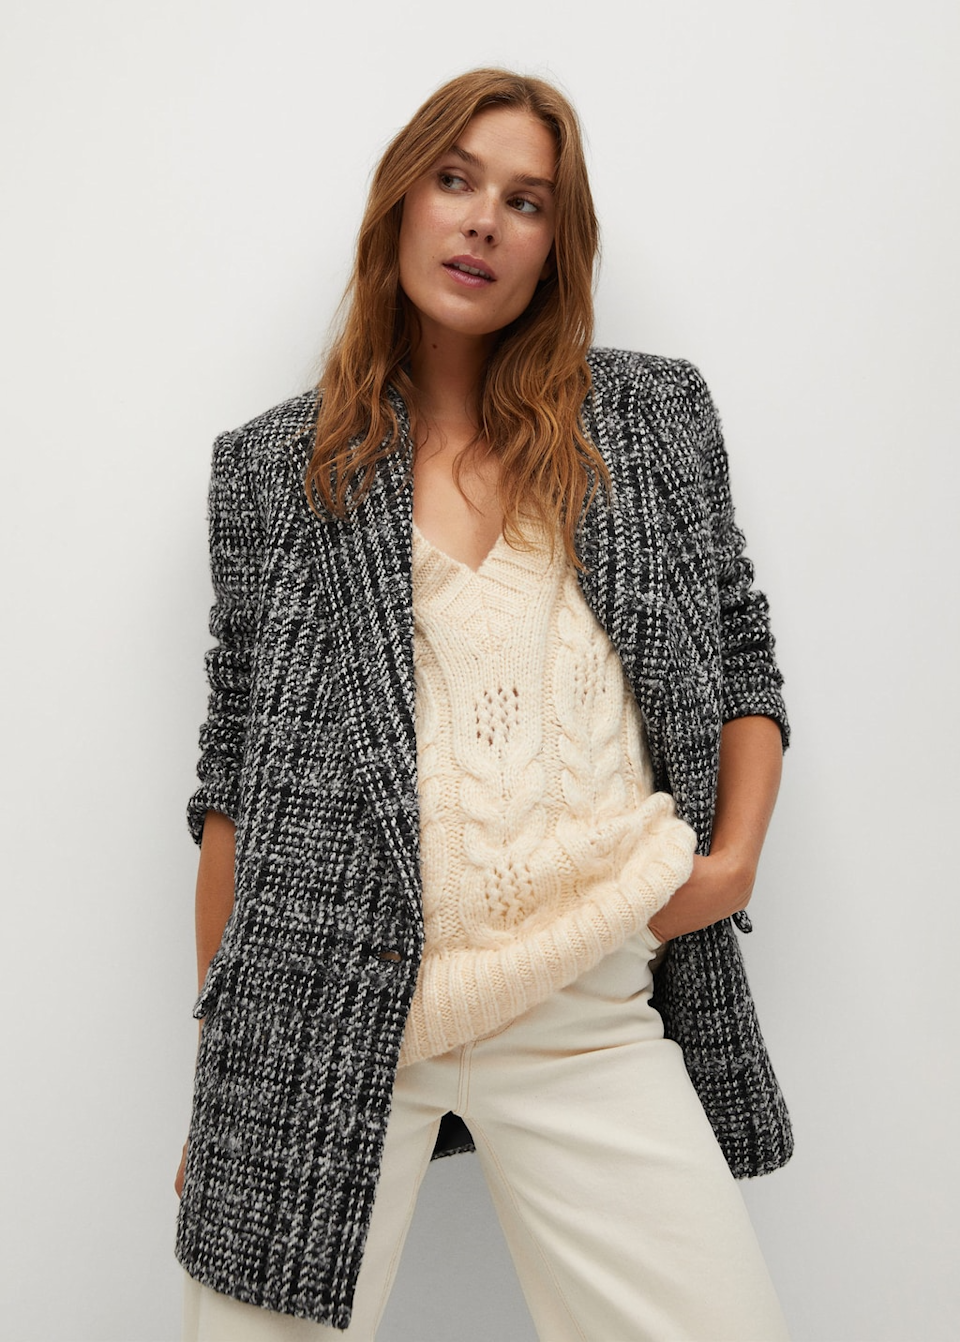 "<h3><strong>Oversized Blazers</strong></h3><br><br><strong>Mango</strong> Tweed Blazer, $, available at <a href=""https://go.skimresources.com/?id=30283X879131&url=https%3A%2F%2Fshop.mango.com%2Fus%2Fwomen%2Fjackets-blazers%2Ftweed-blazer_77027108.html"" rel=""nofollow noopener"" target=""_blank"" data-ylk=""slk:Mango"" class=""link rapid-noclick-resp"">Mango</a>"